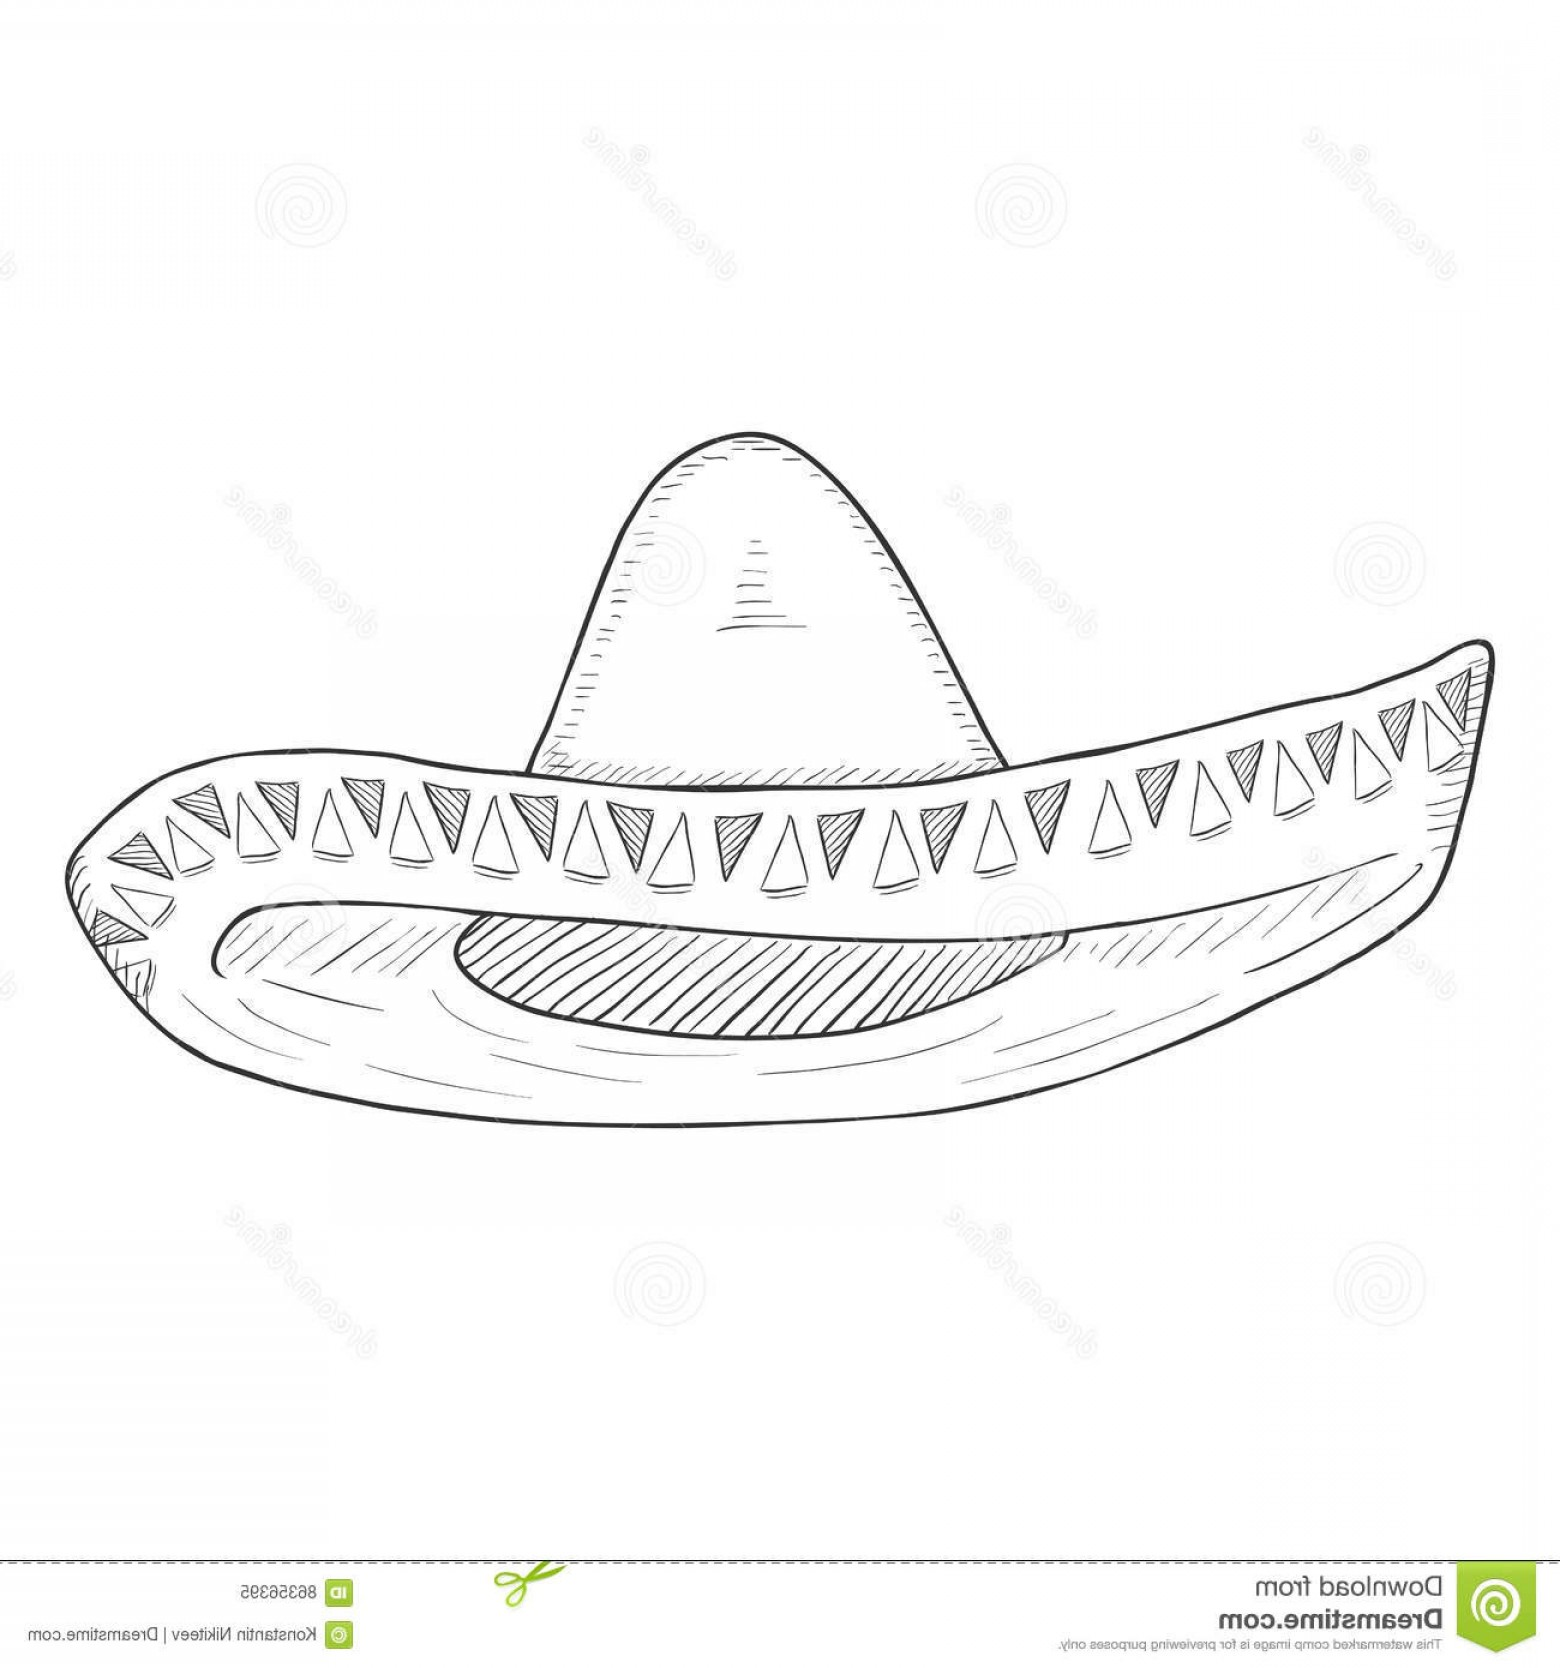 Sombrero Vector Outline: Stock Illustration Vector Single Sketch Traditional Mexican Hat Sombrero White Background Image